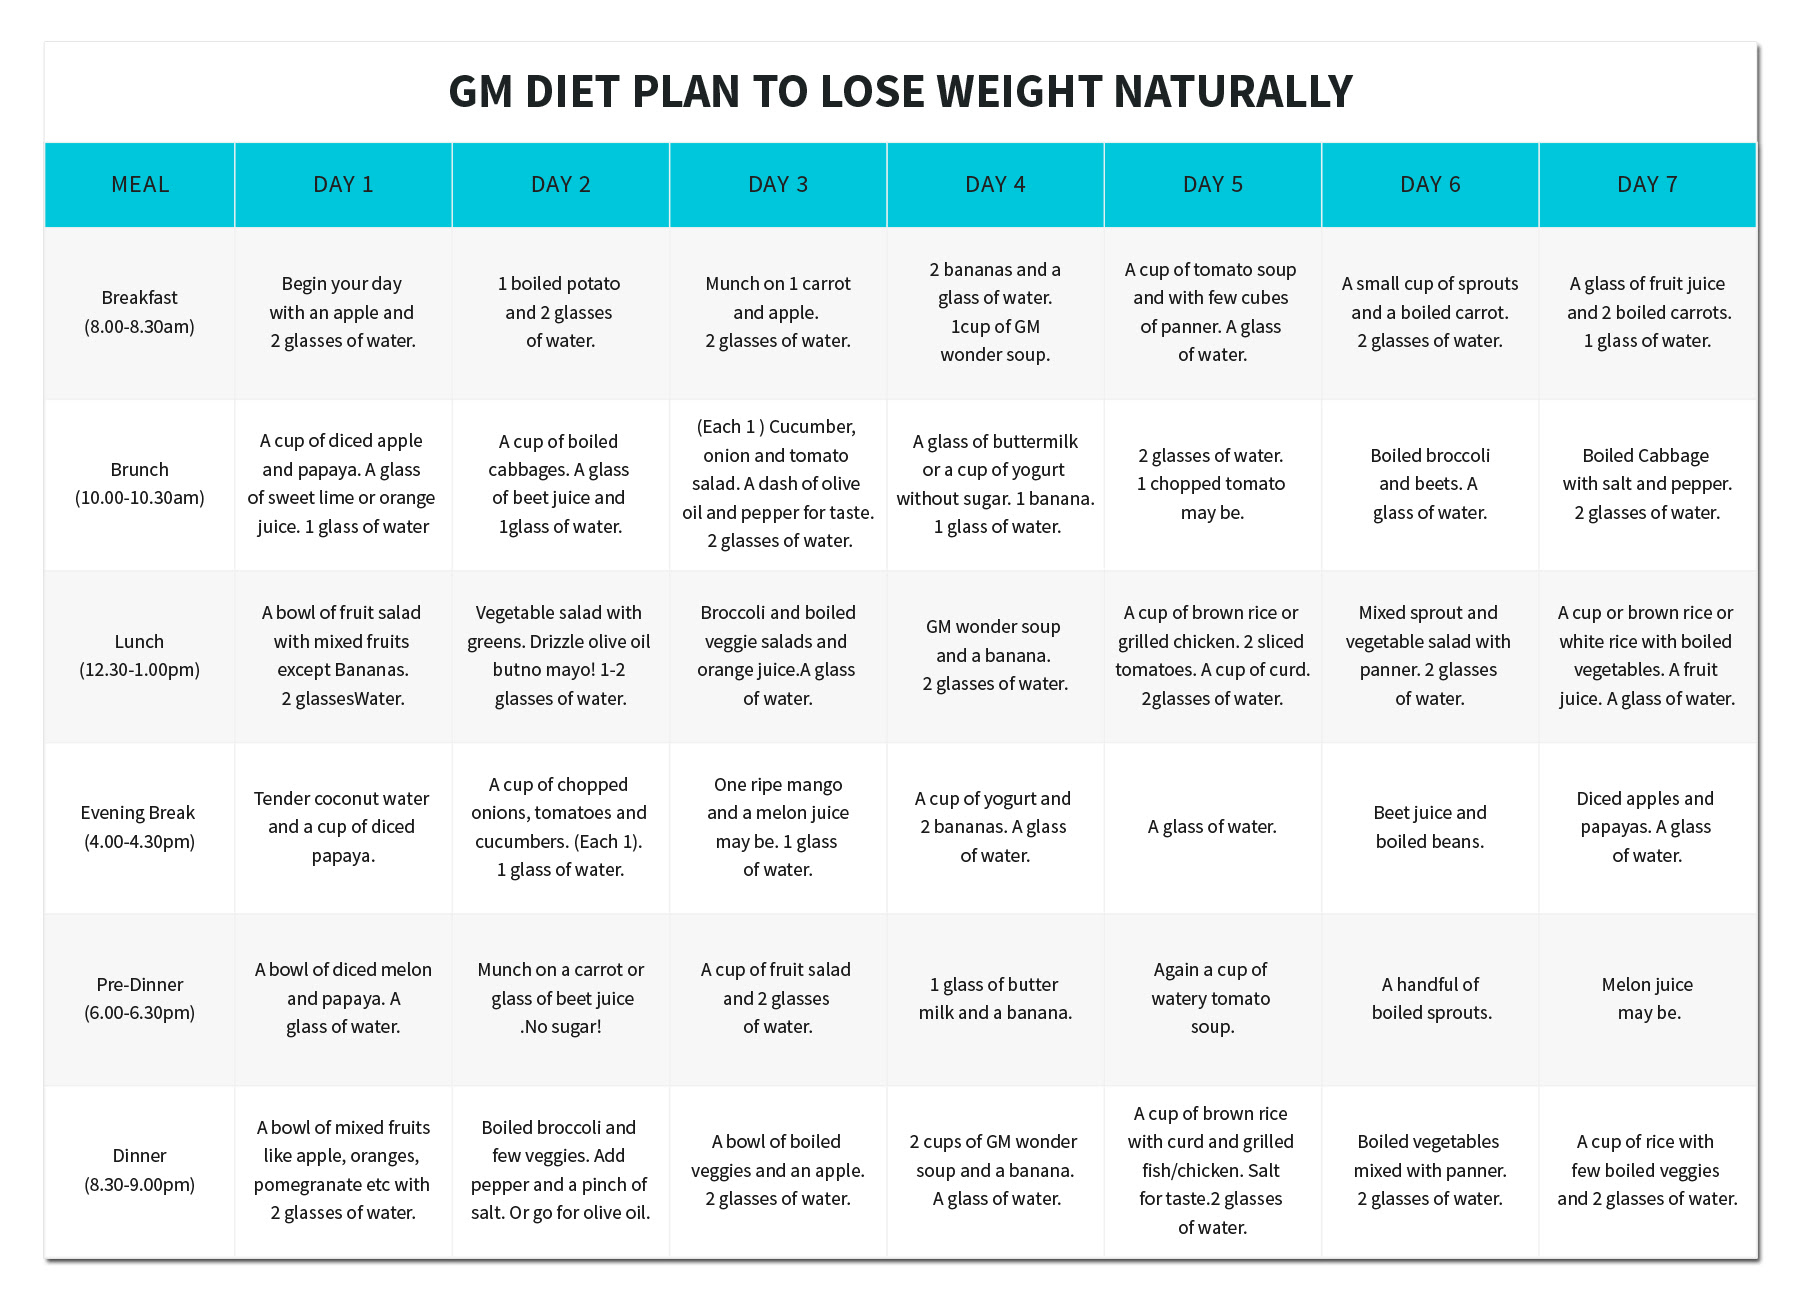 how to lose weight naturally proven gm diet plan